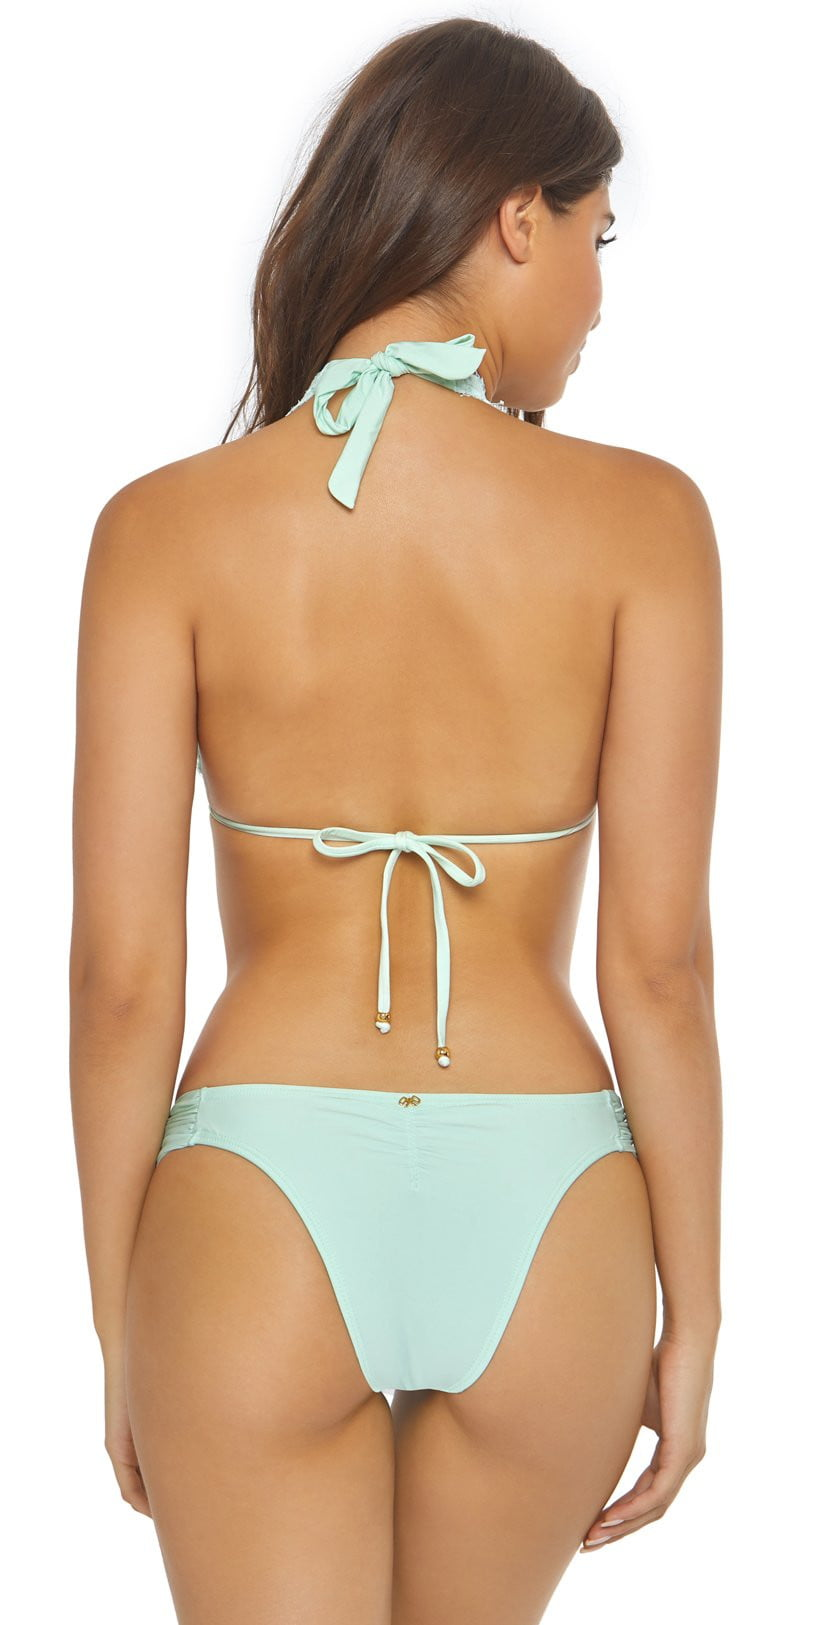 PilyQ Azura Lace Fanned Teeny Bikini Bottom AZU-251T Blue: